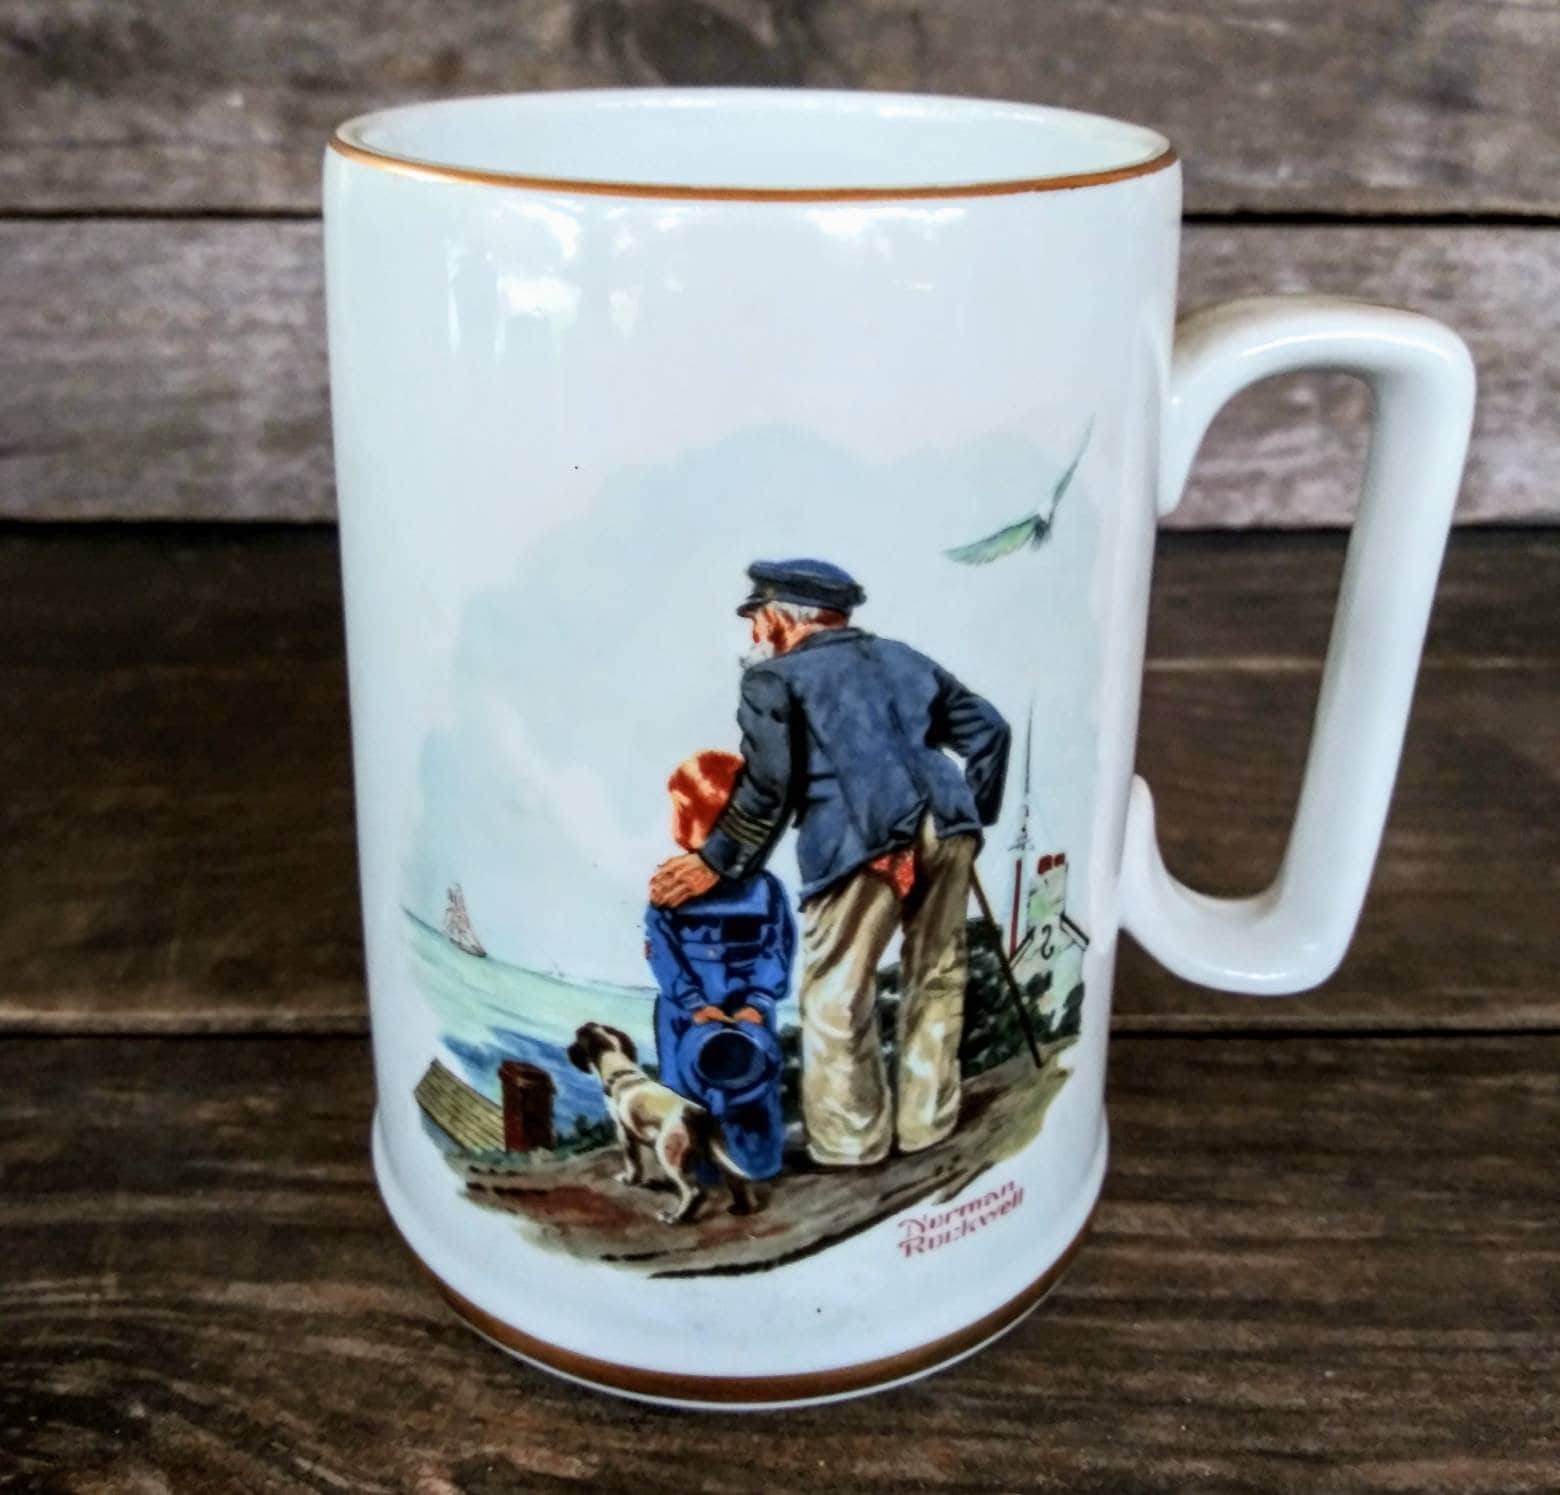 568a401d298 Vintage Norman Rockwell Mug, Looking out to sea, Authentic Norman ...